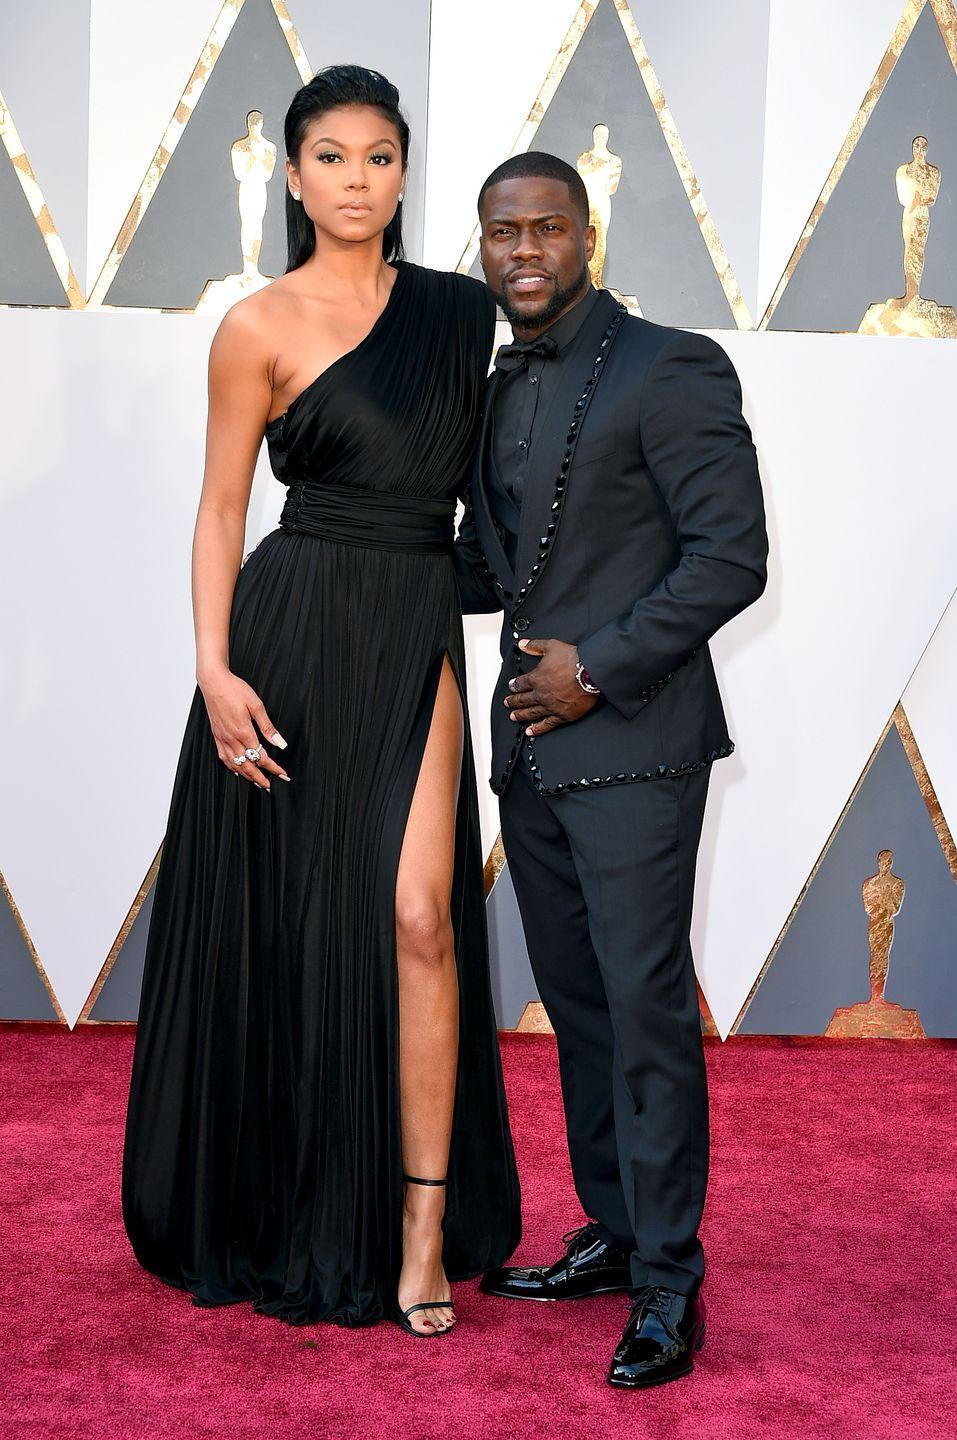 """<p>""""This is a power-couple paparazzi pose,"""" says Donaldson. Eniko and Kevin are confidently putting the strength of their relationship on full display. Their postures, stances, and arms on each other's backs prove that they're secure as long as they're together. </p>"""